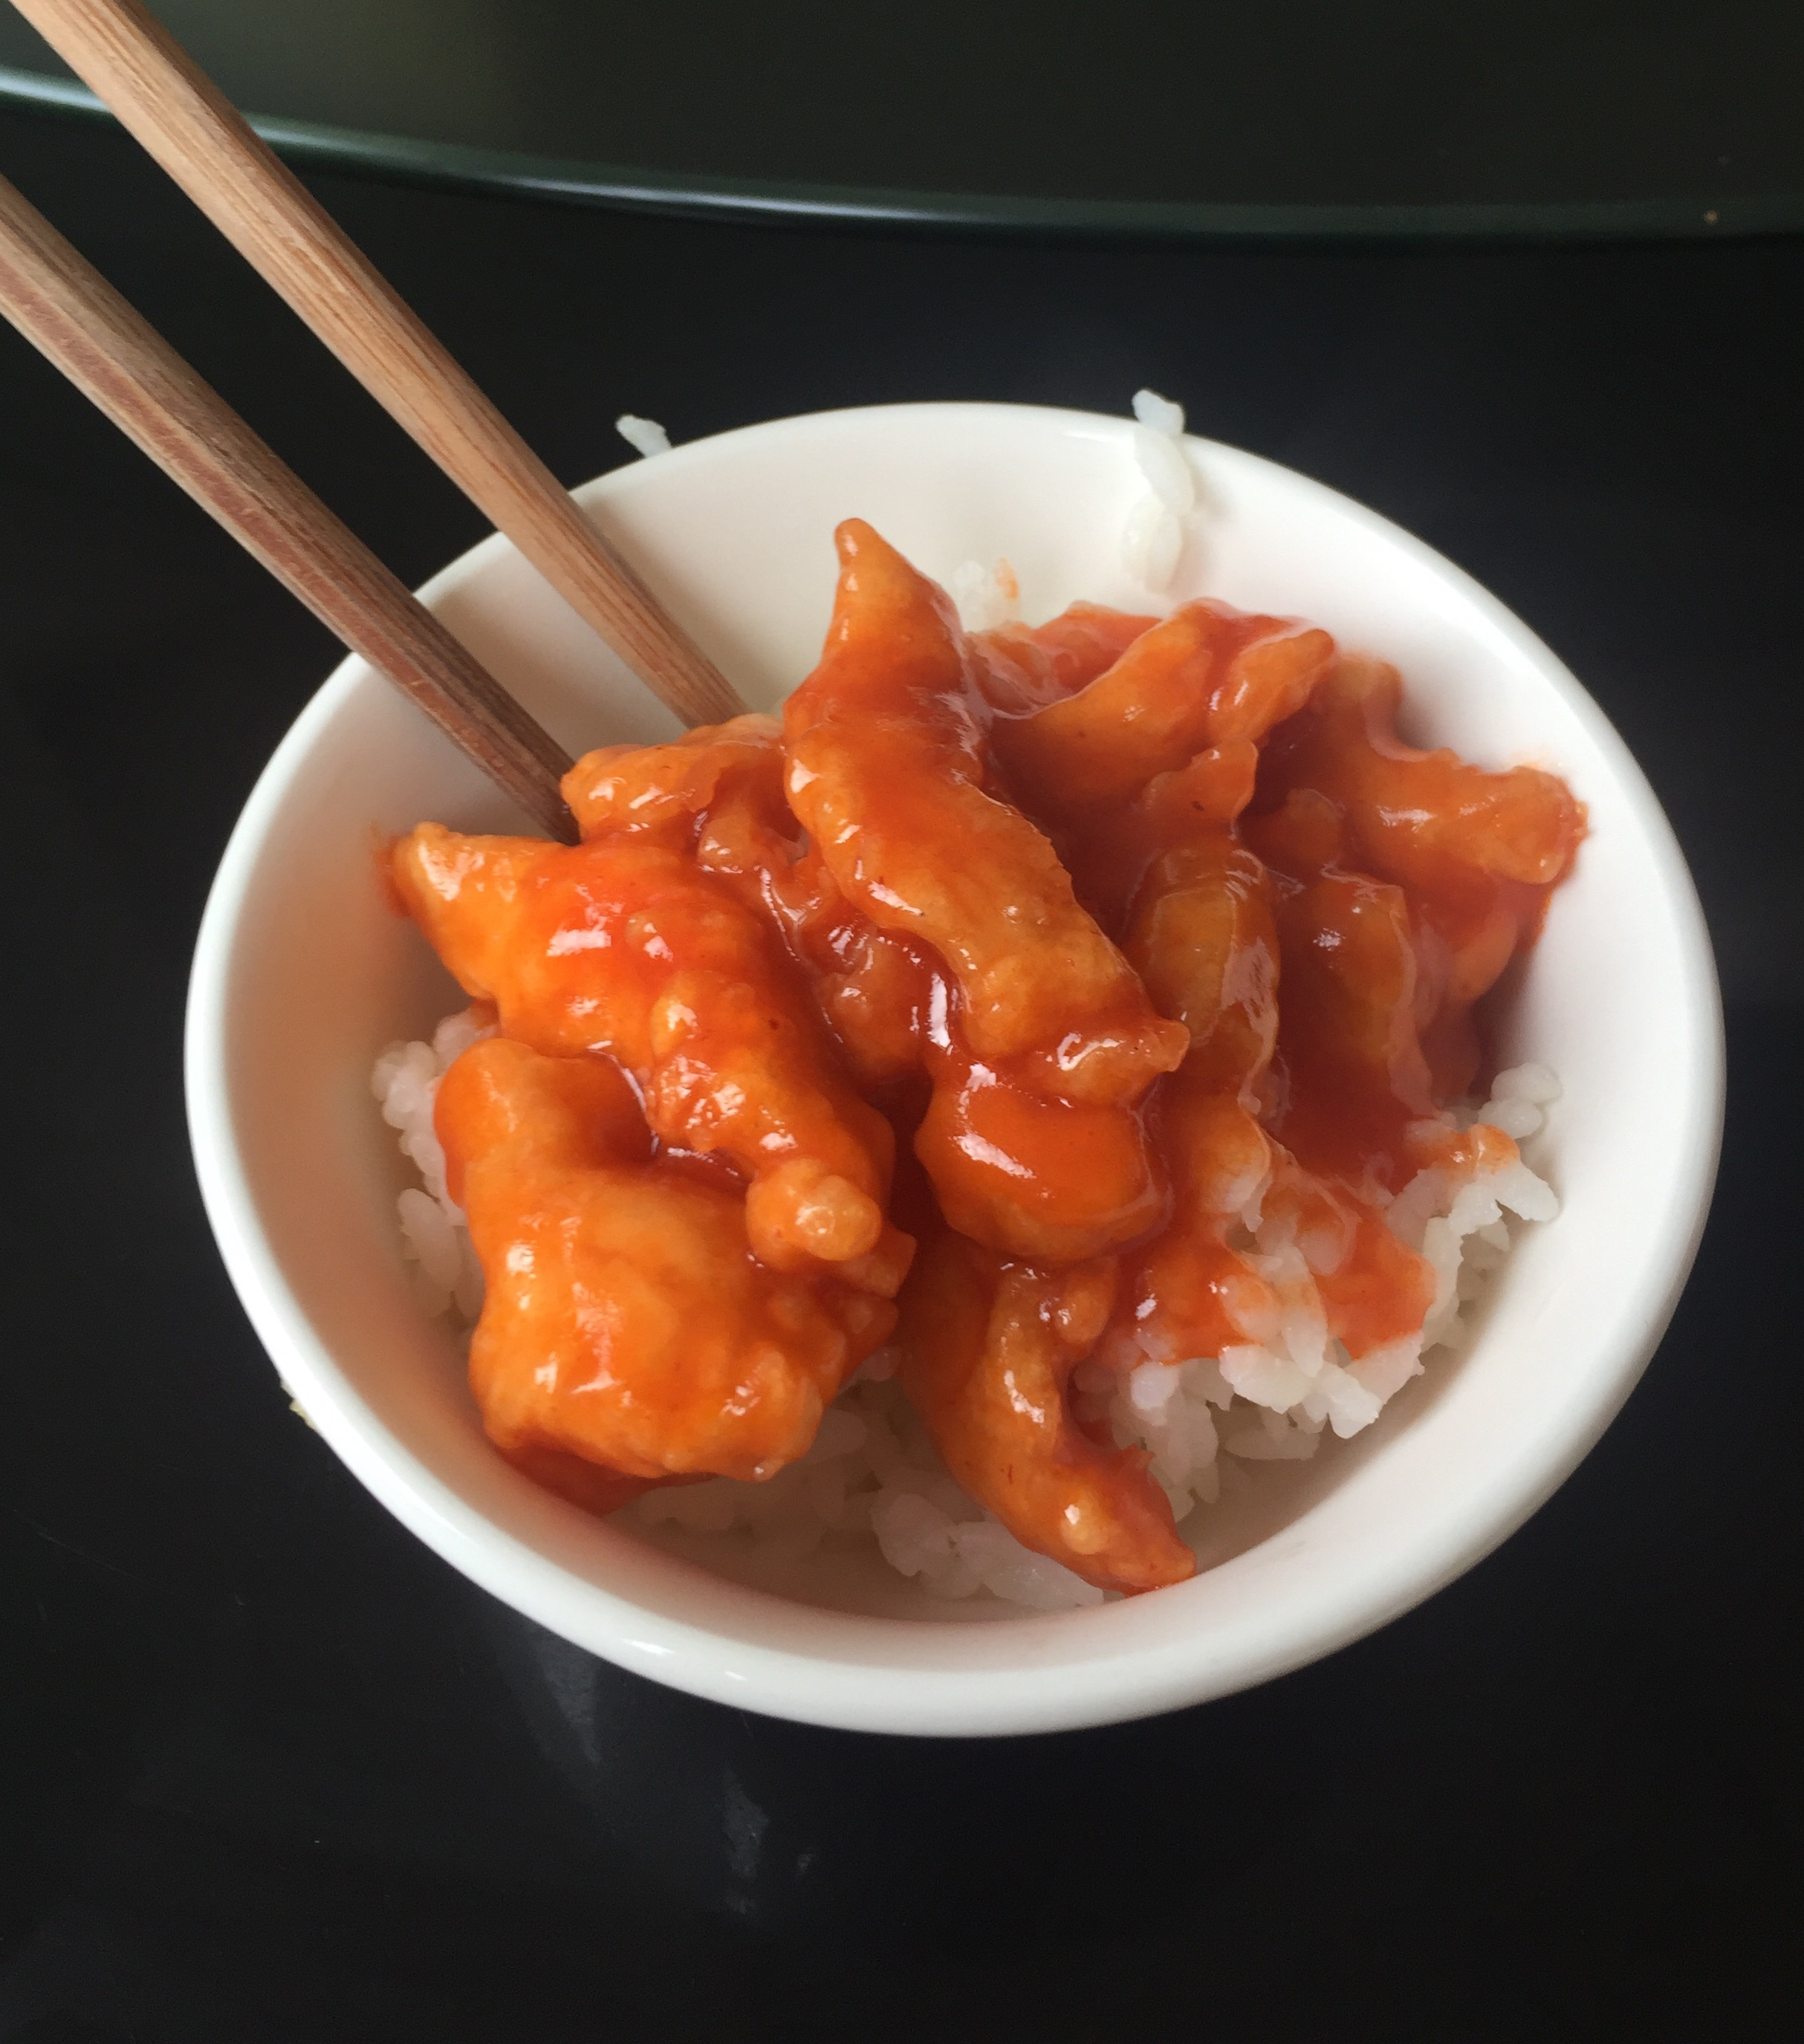 Sweet & sour chicken... by far my fav here. Can you tell how small the bowls are? Talk about portion control. LOL